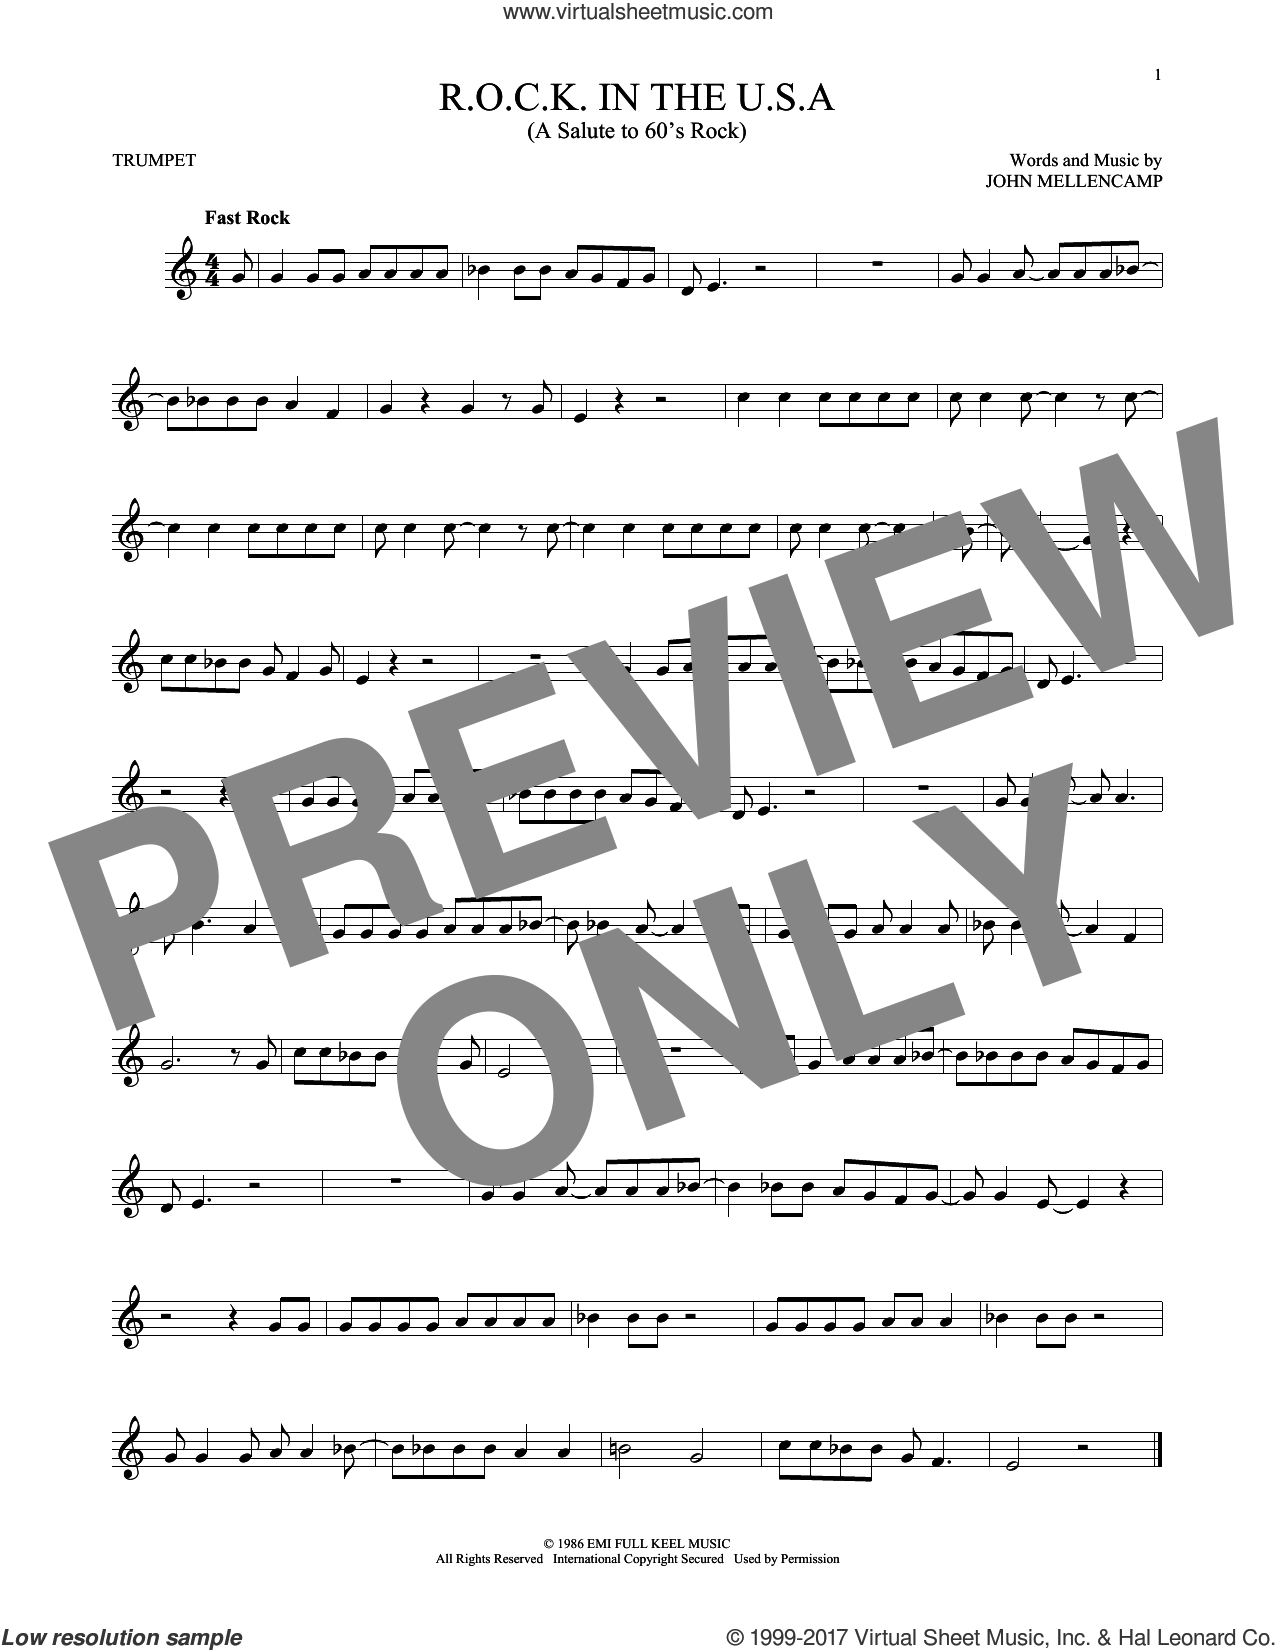 R.O.C.K. In The U.S.A. (A Salute To 60's Rock) sheet music for trumpet solo by John Mellencamp, intermediate. Score Image Preview.